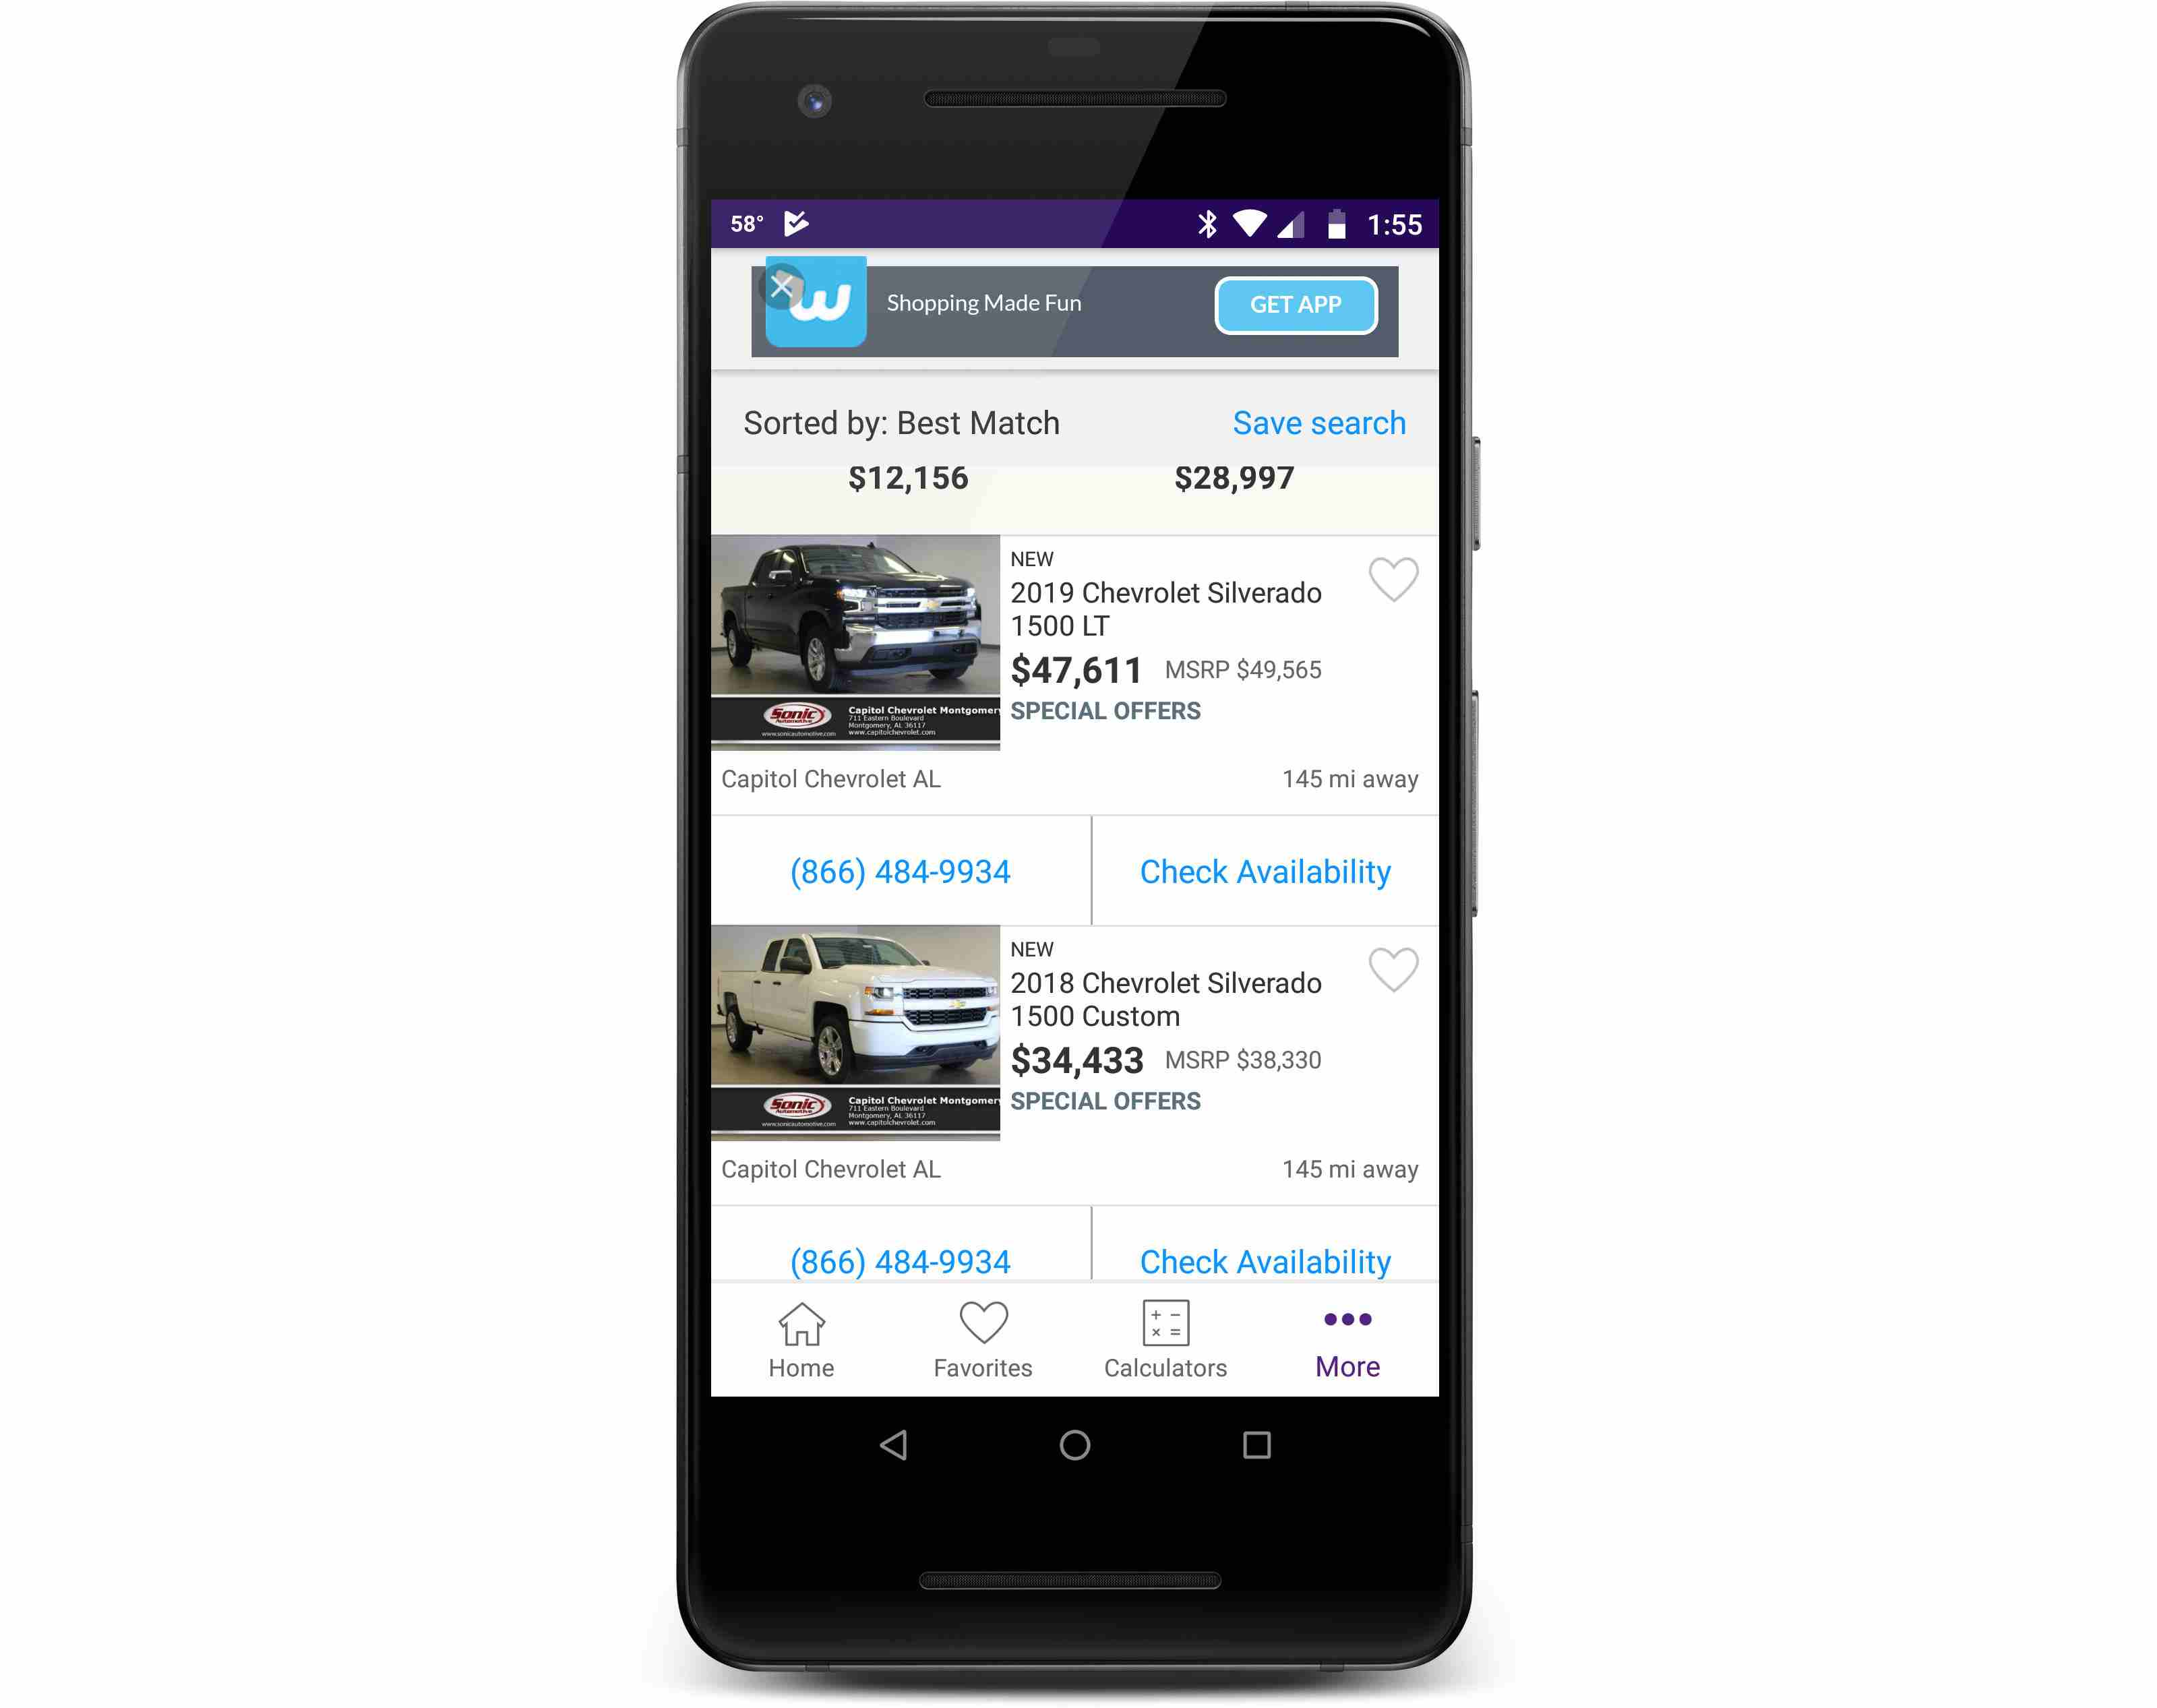 The Cars.com app displayed on a phone